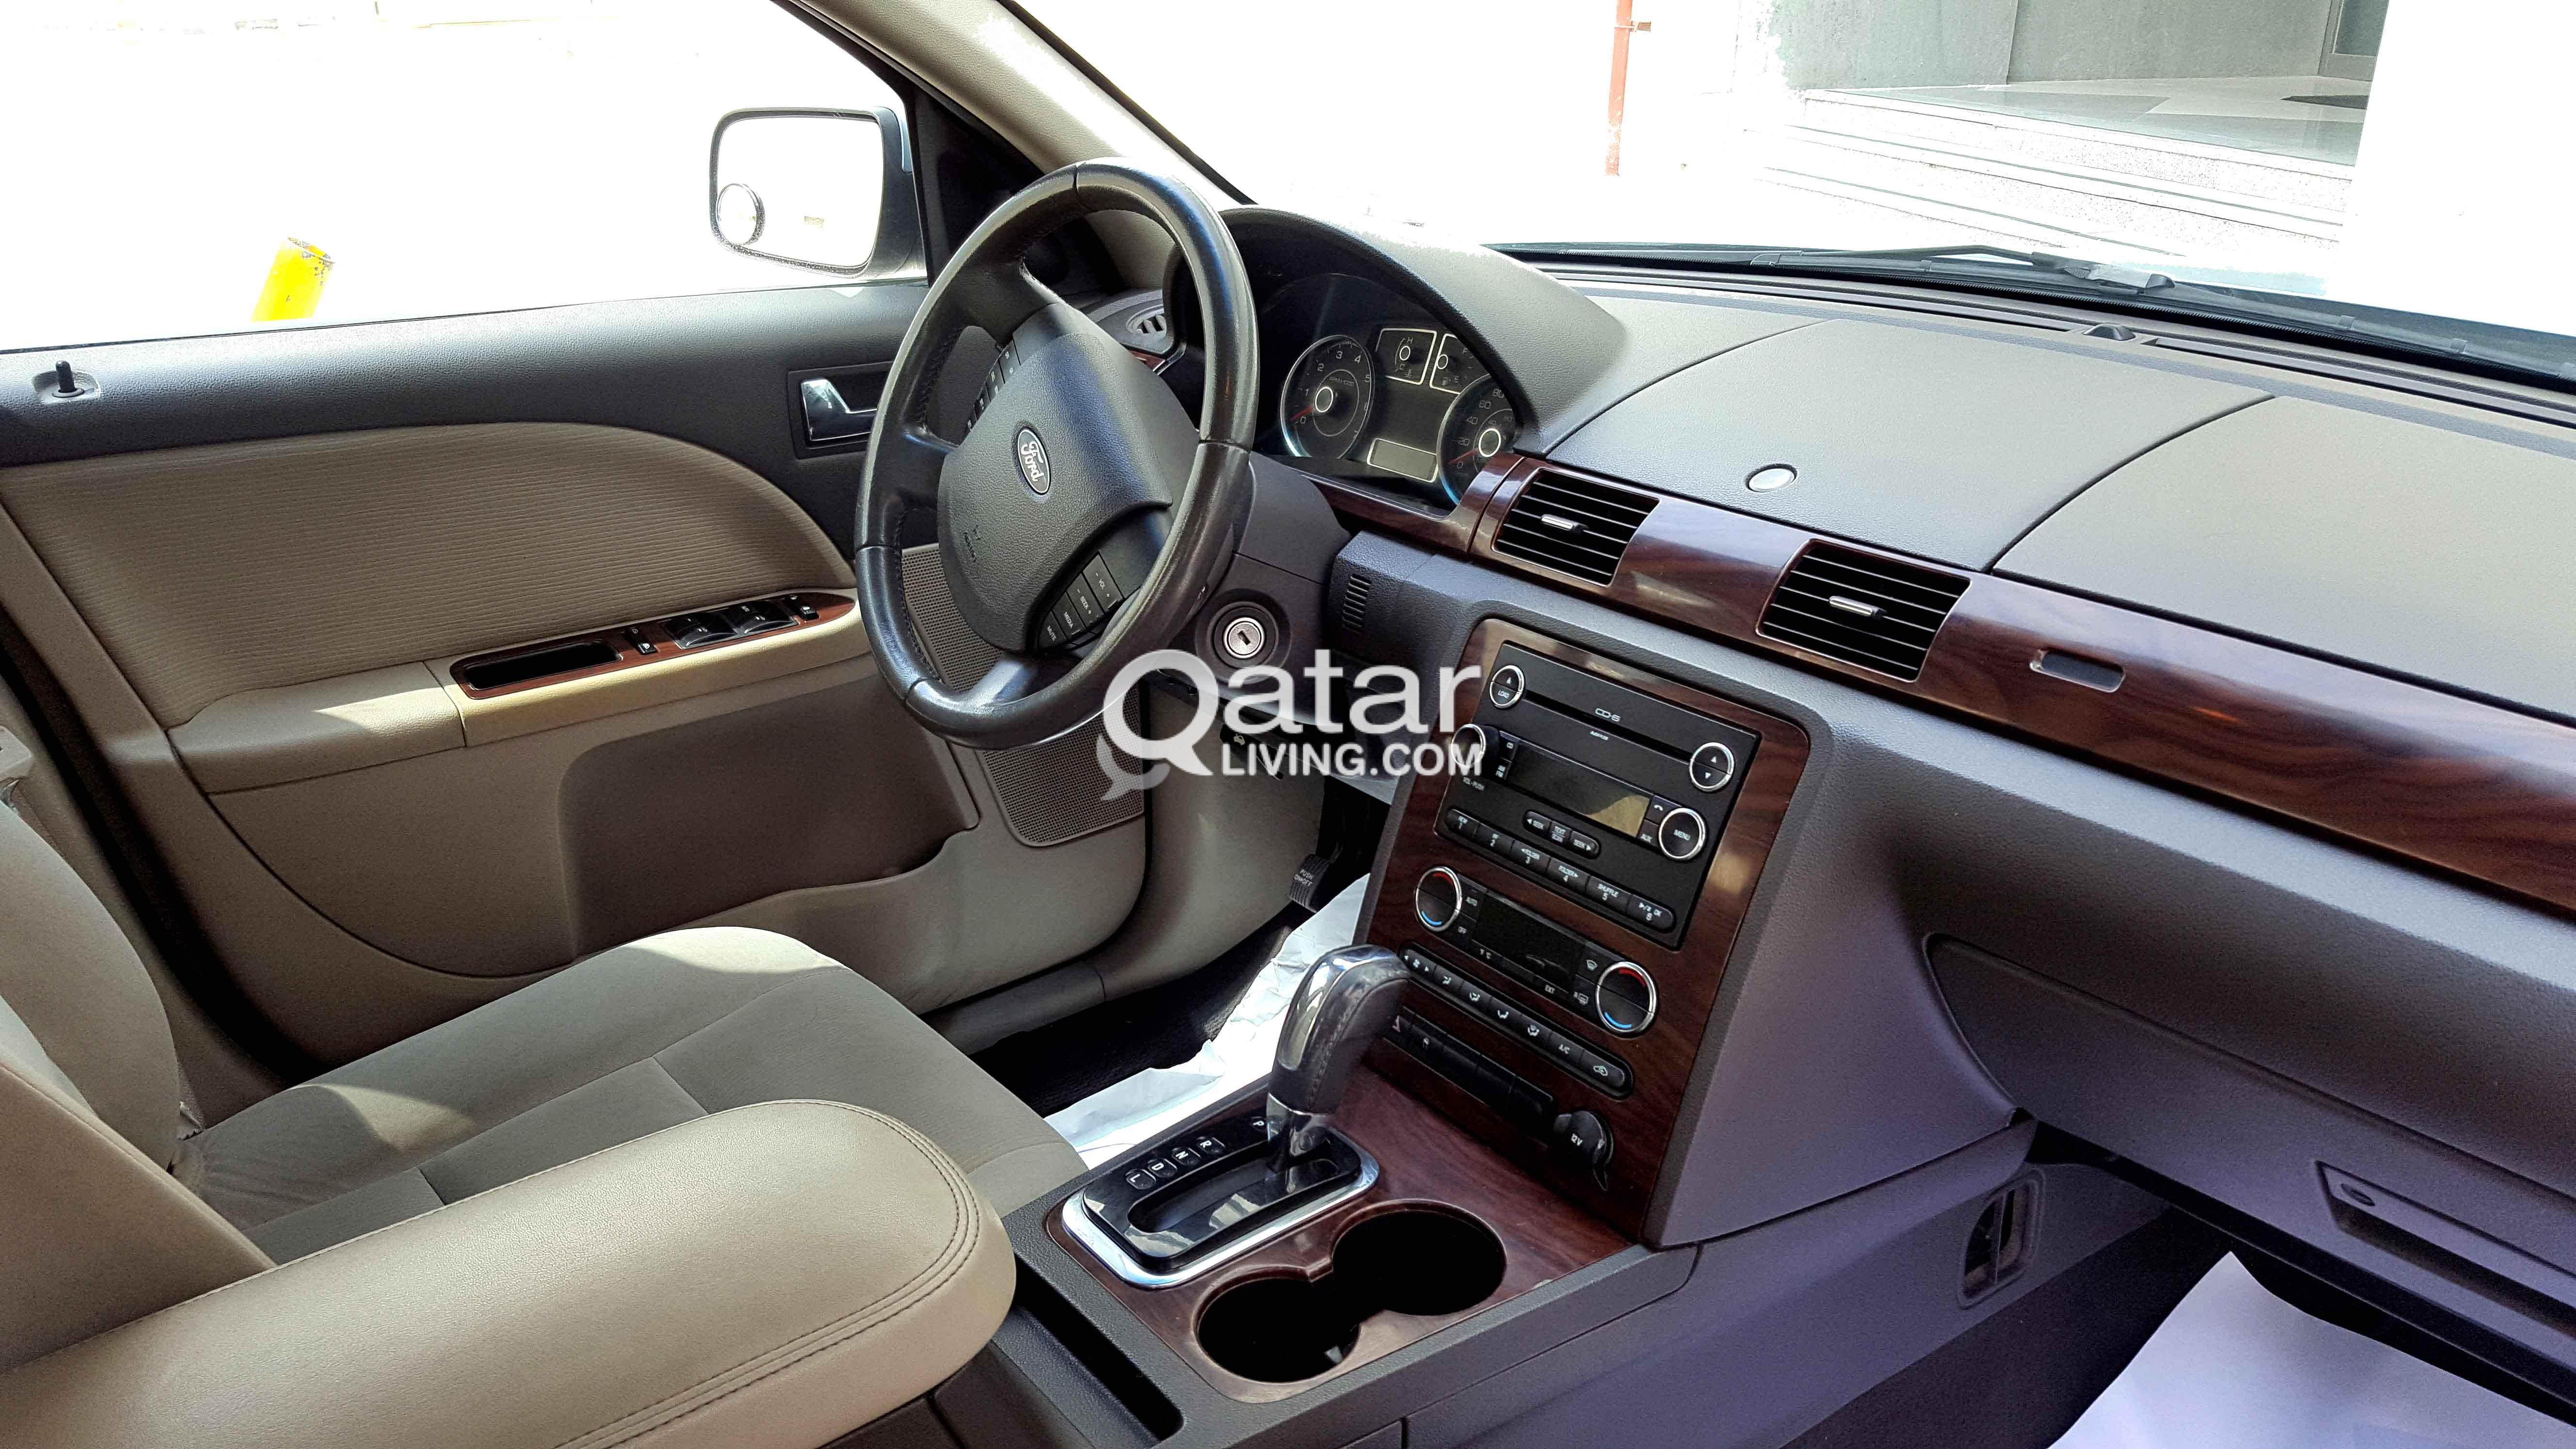 Ford five hundred 2009 qatar living